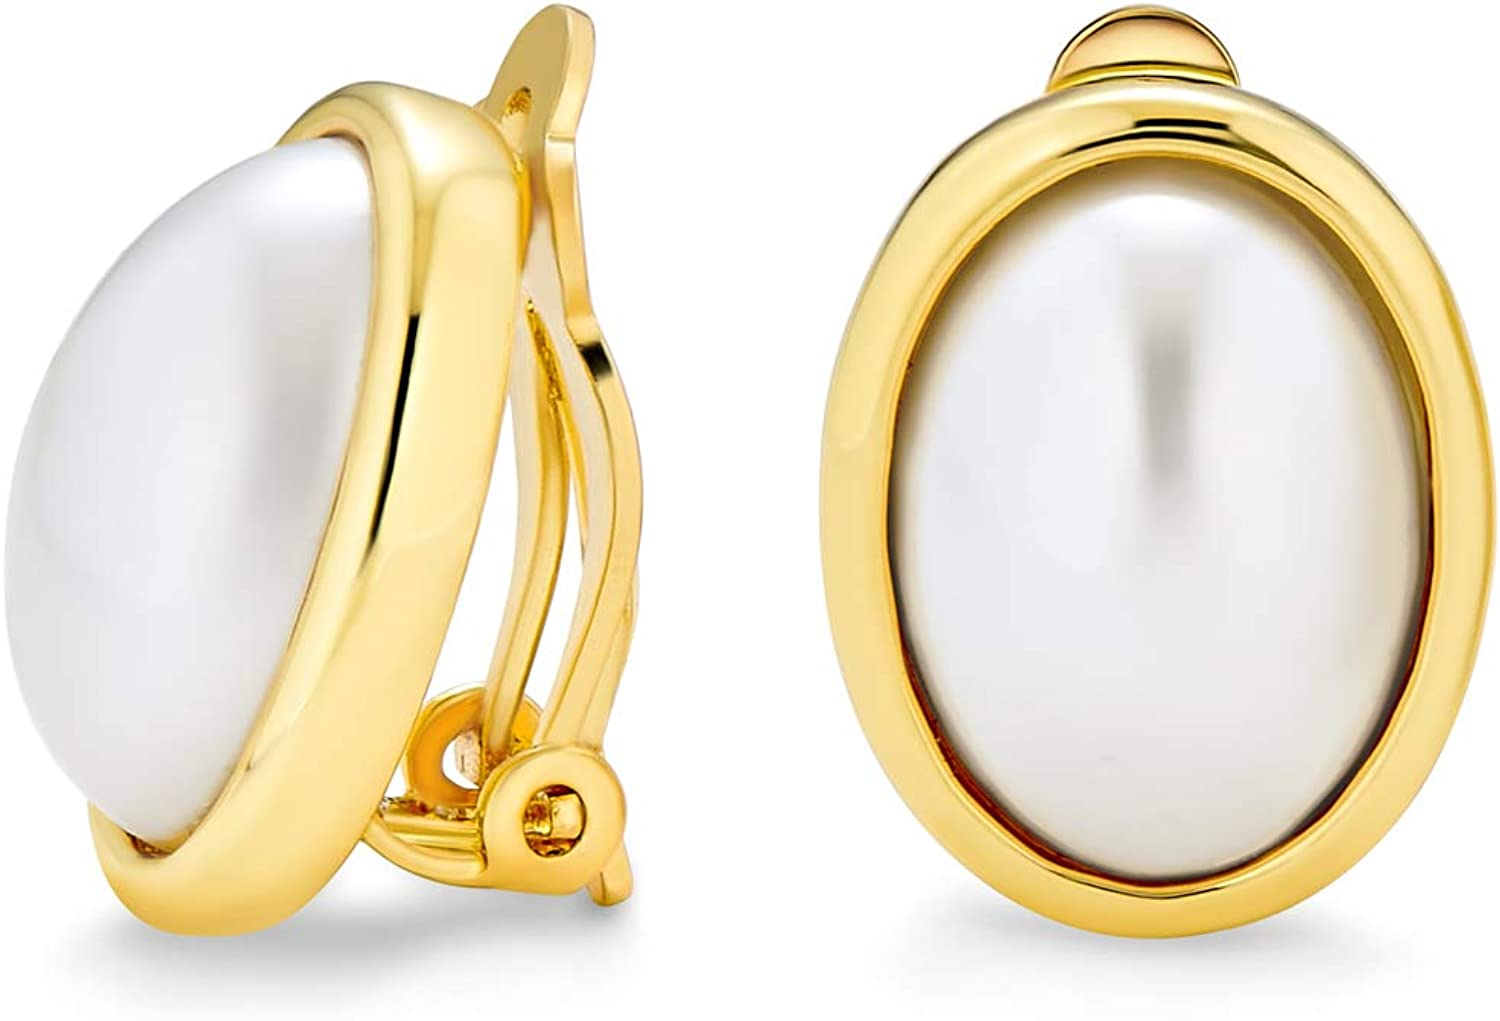 Simple White Simulated Pearl Cabochon Bezel Oval Clip On Earrings For Women For Non Pierced Ears 14K Gold Plated Brass